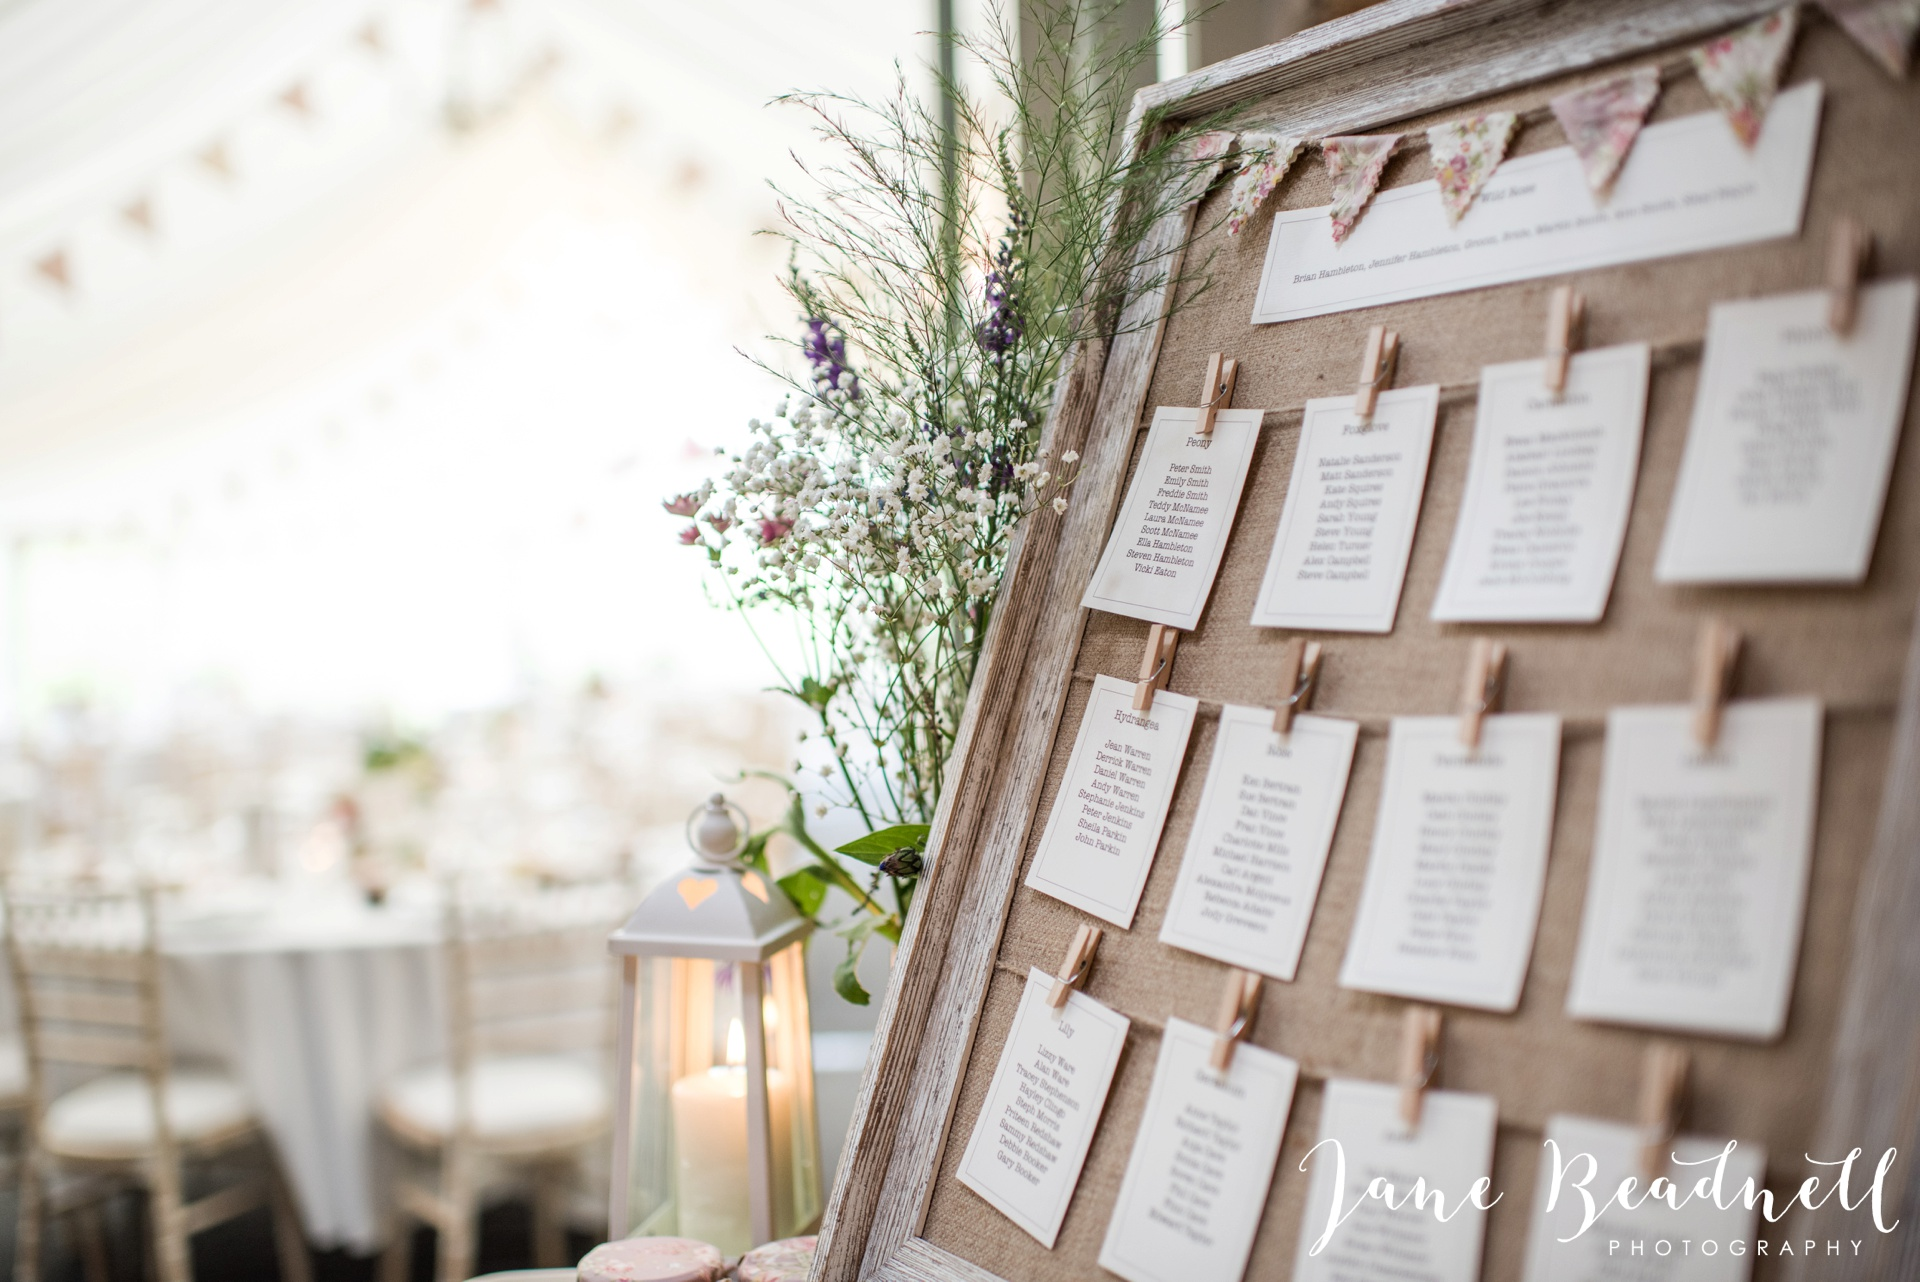 Yorkshire Wedding Photography the cheerful Chilli Barn Wedding by Jane Beadnell Photography_0111